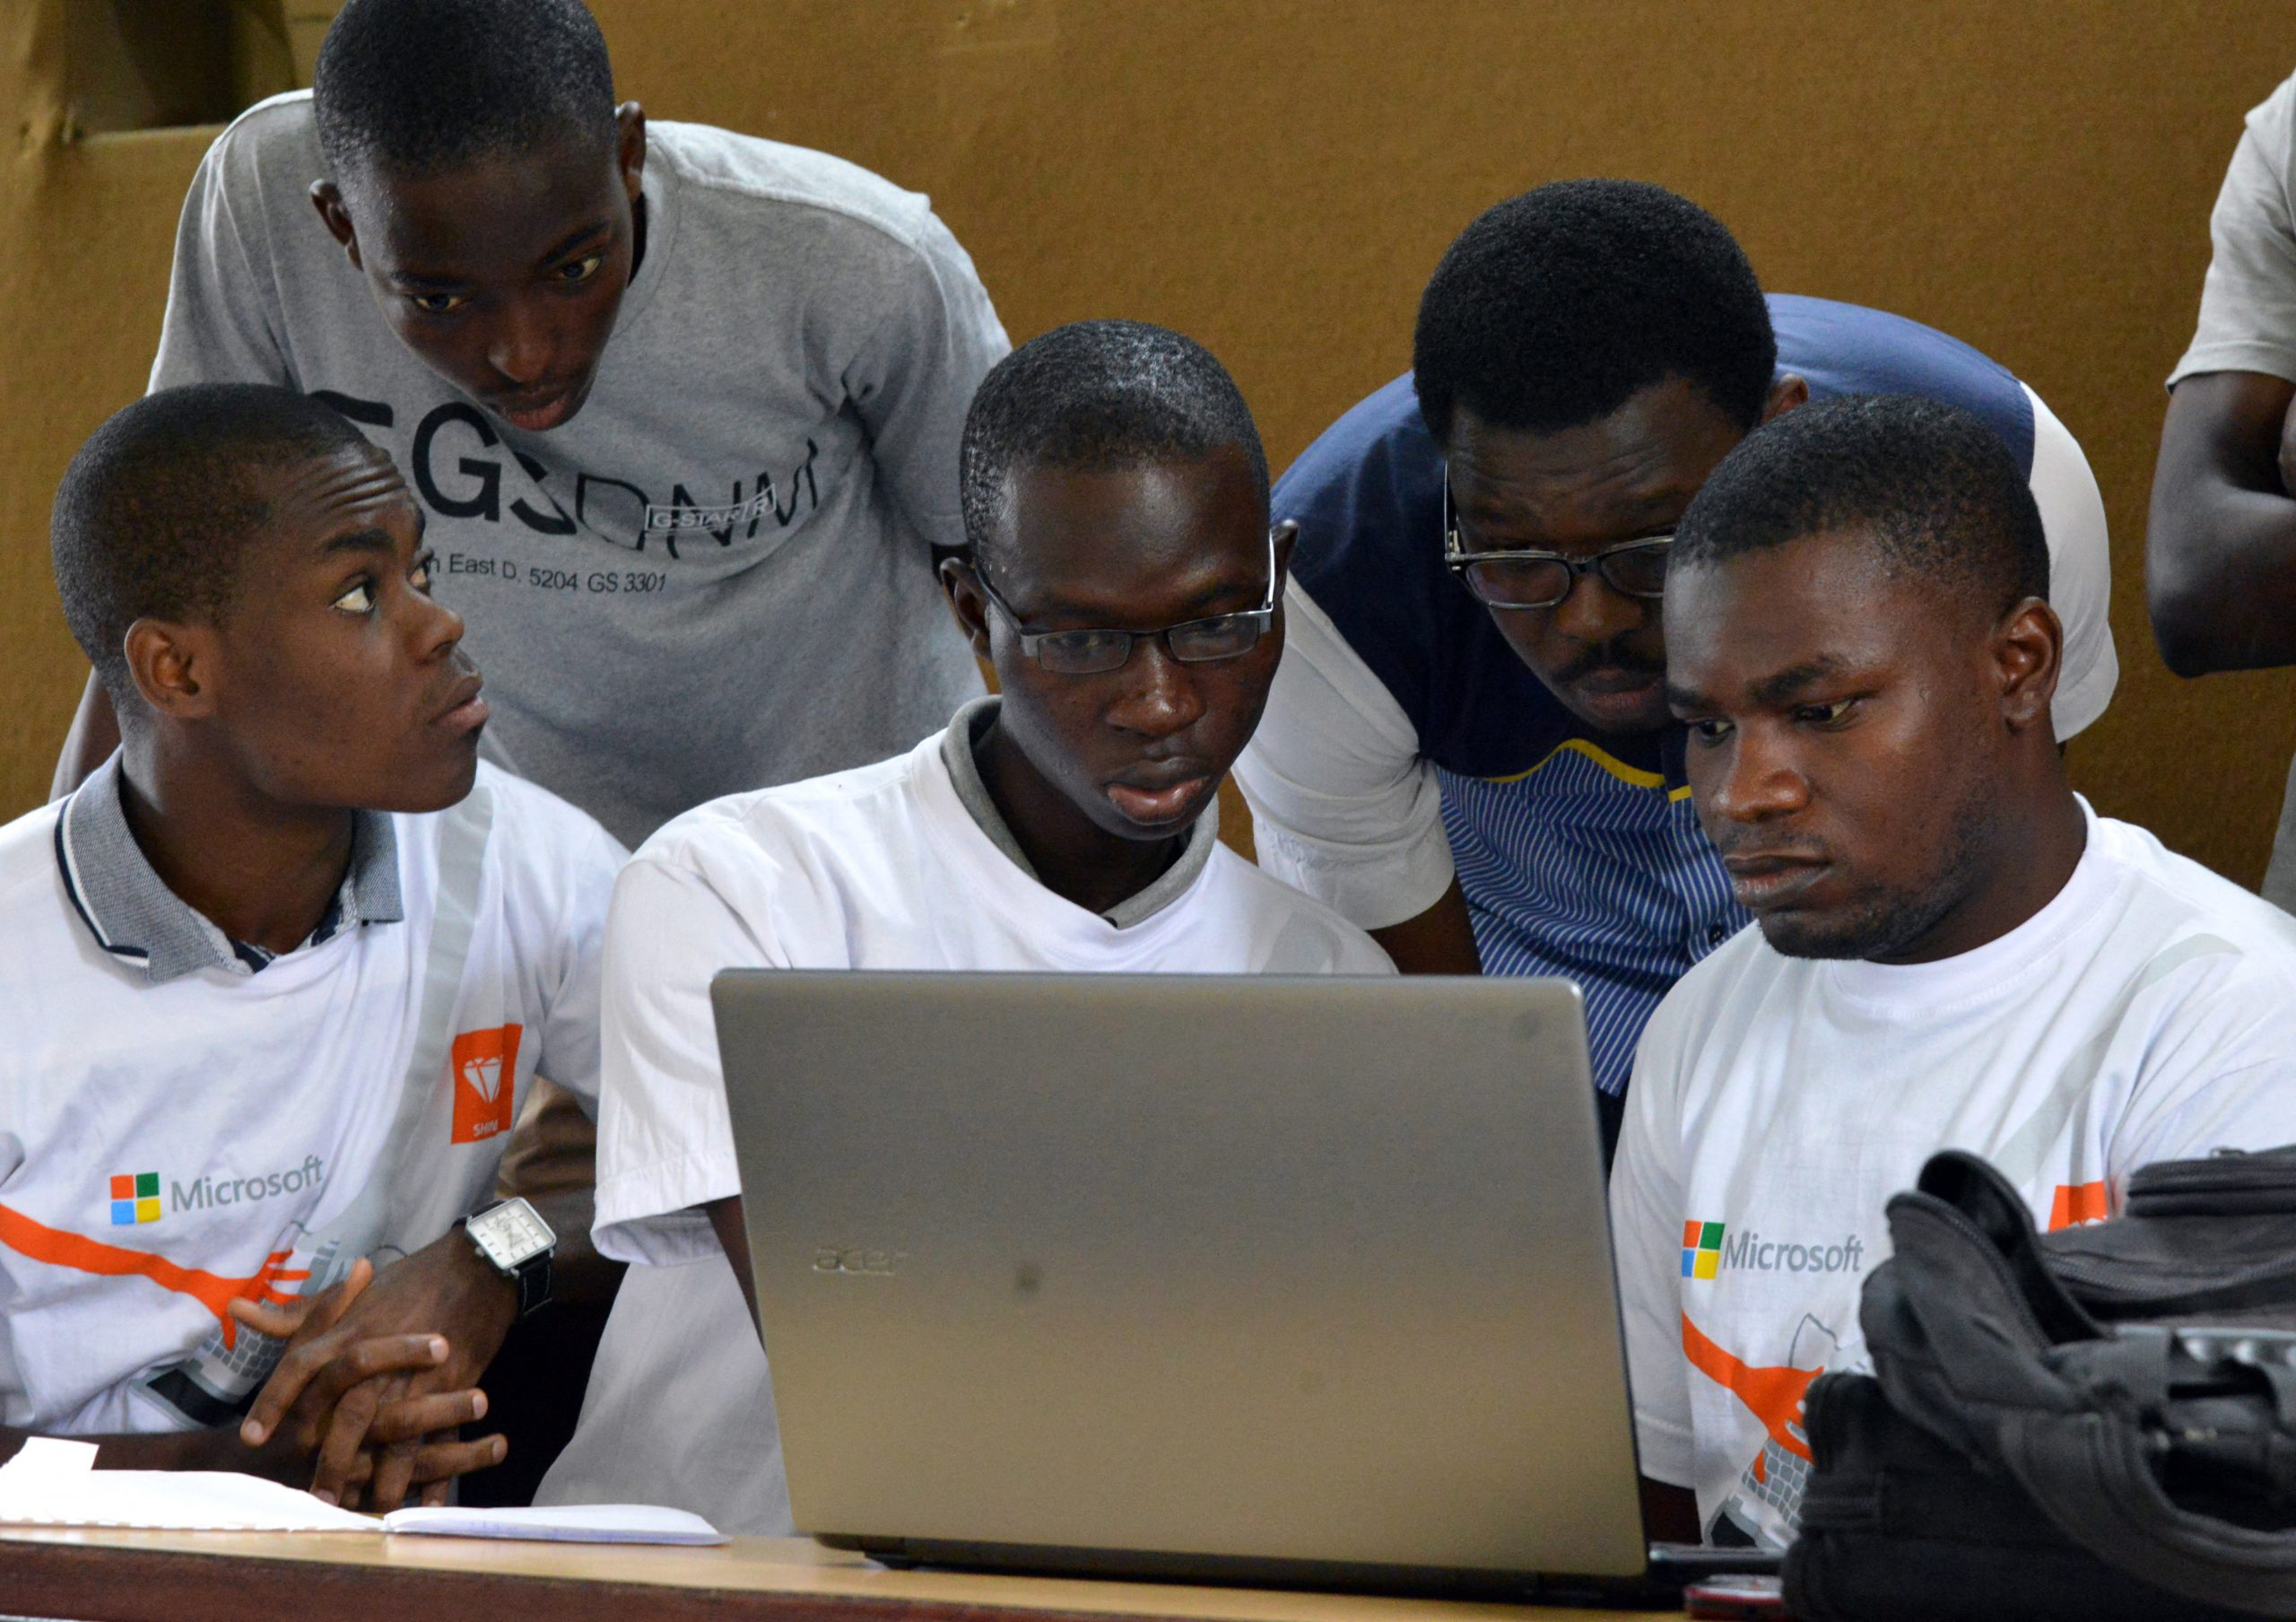 Invest in African youth today for a brighter tomorrow